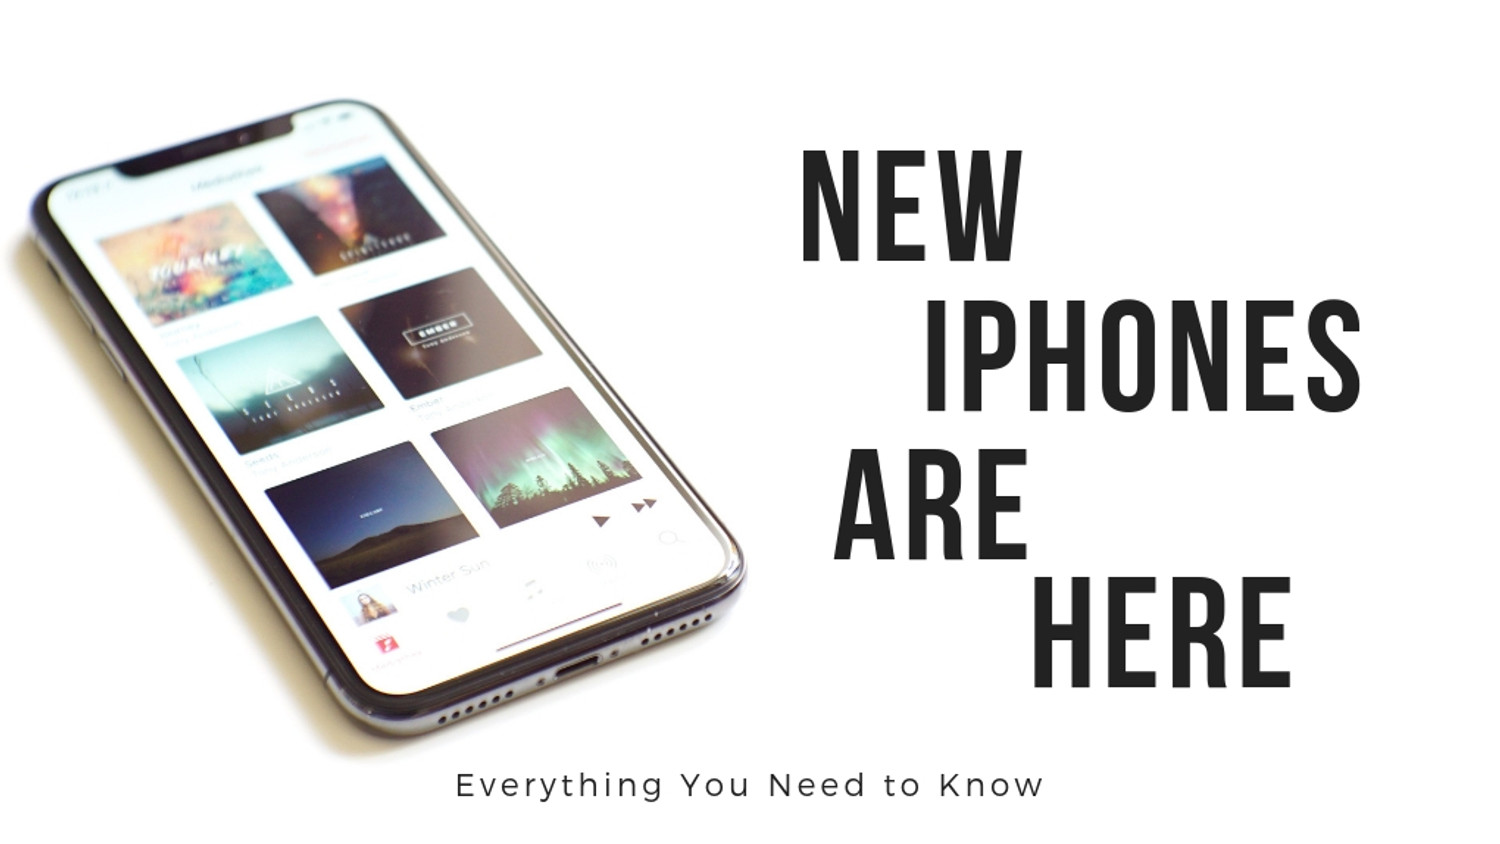 New iPhones Are Here: Everything You Need to Know